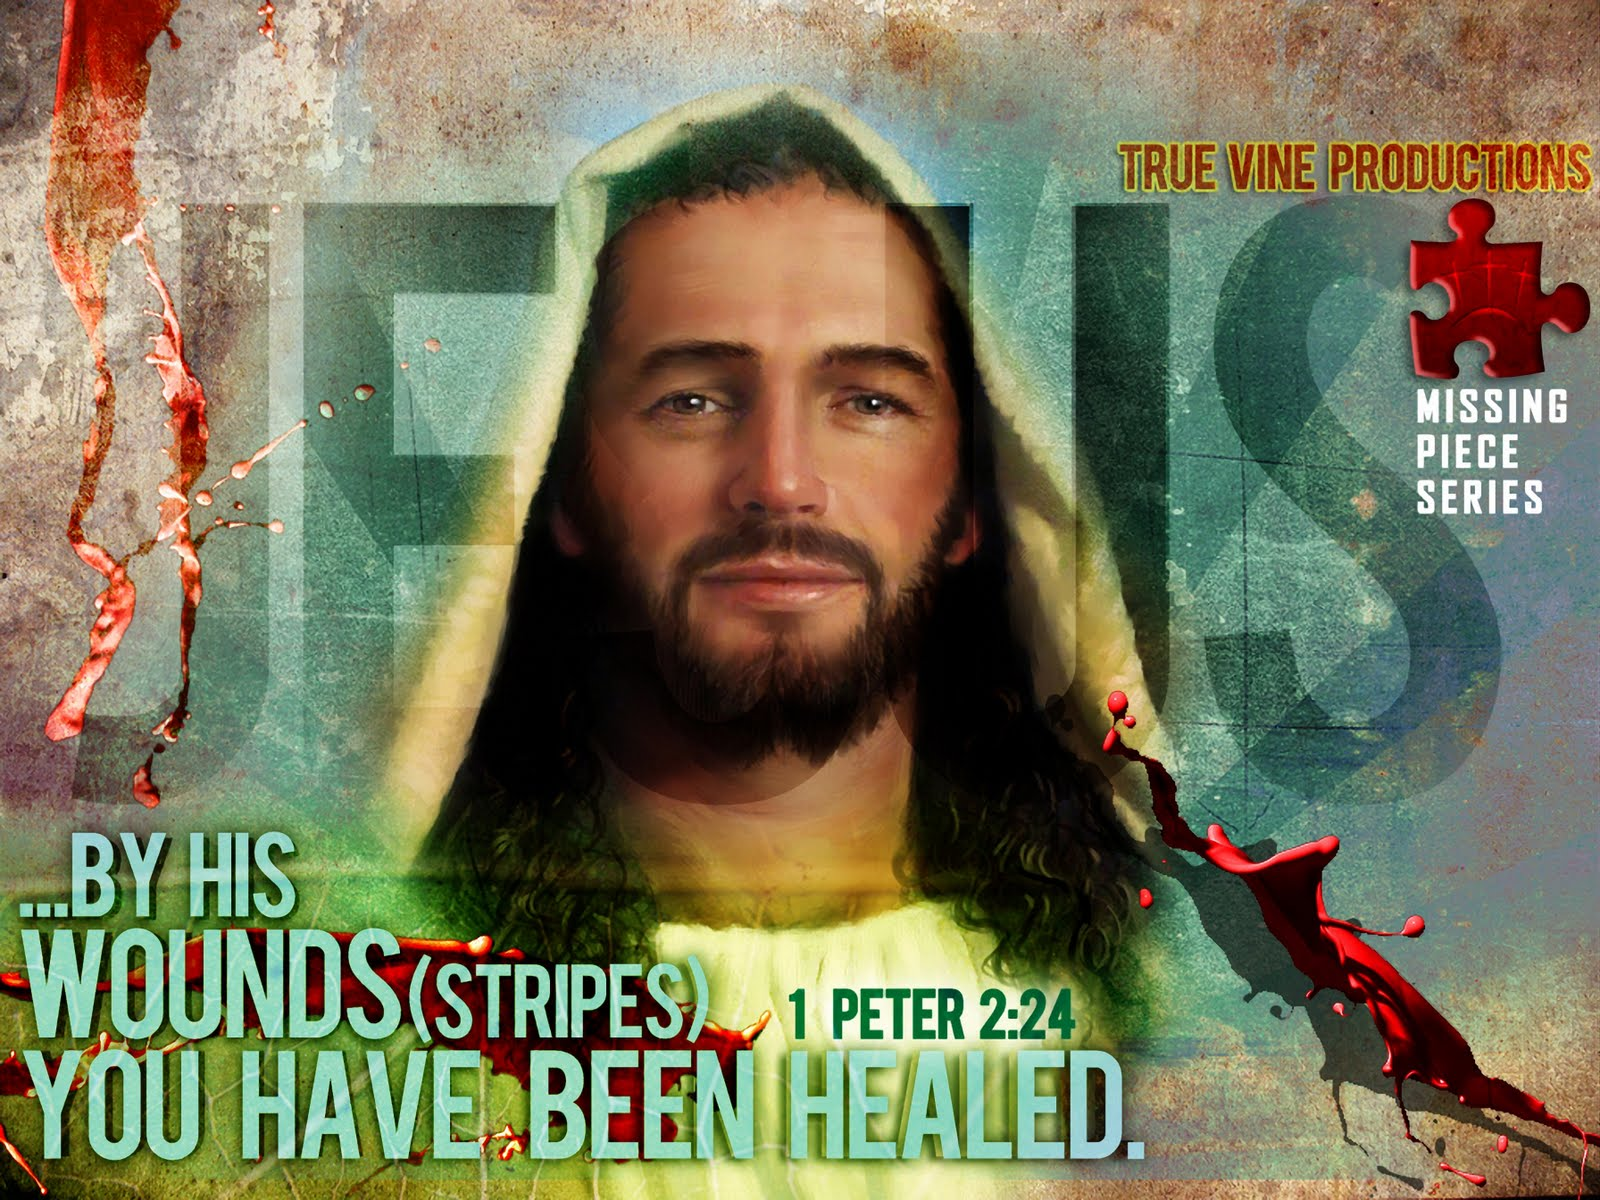 jesus hd wallpaper about healing colorful version on truevined